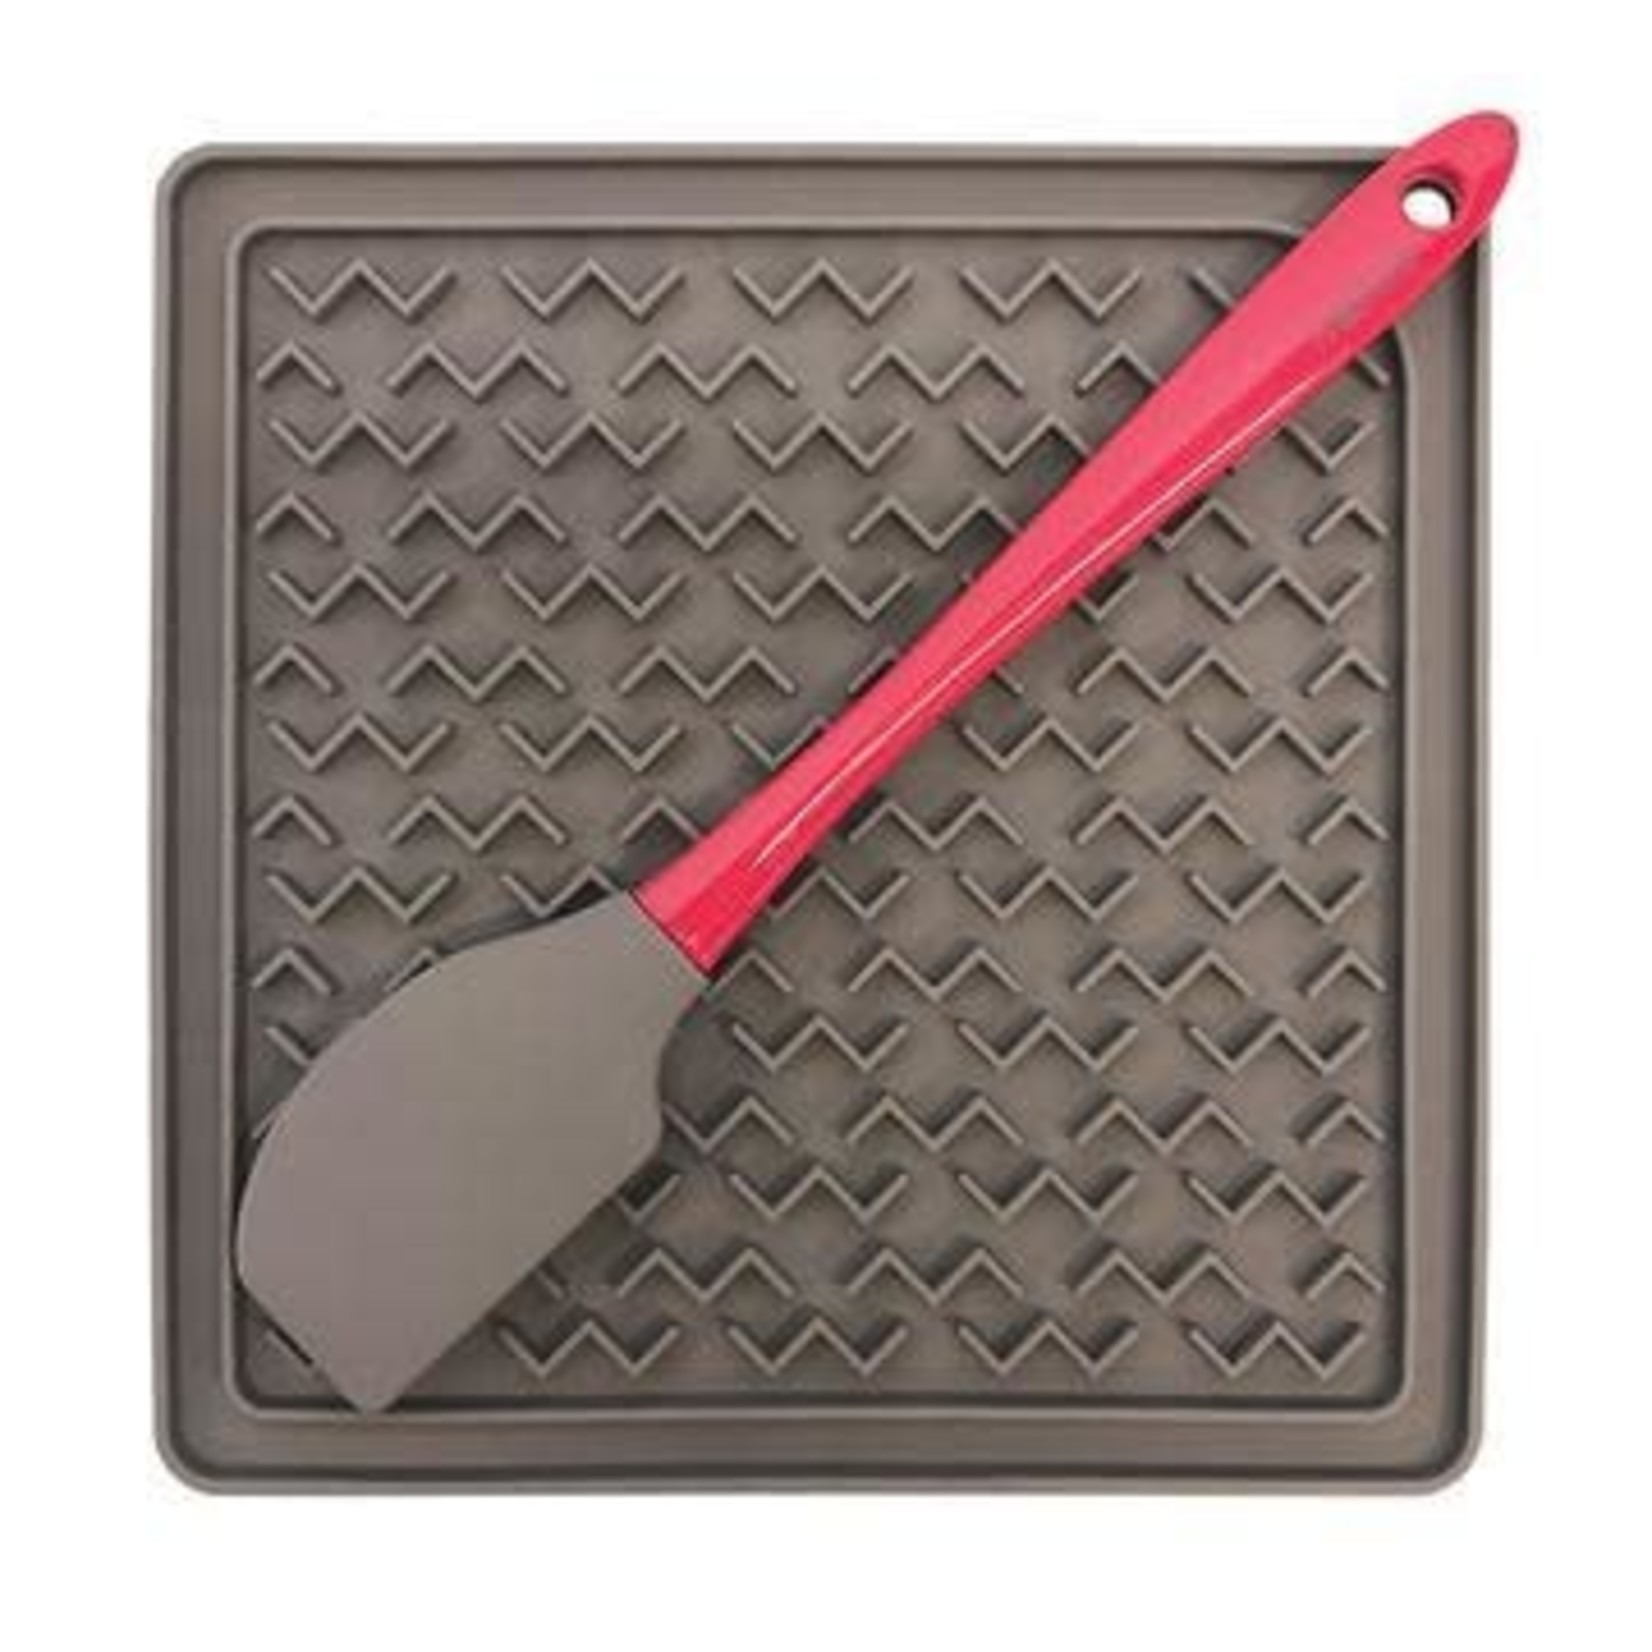 Messy Mutts Messy Mutts Interactive Silicone Feeding Mat with Spatula